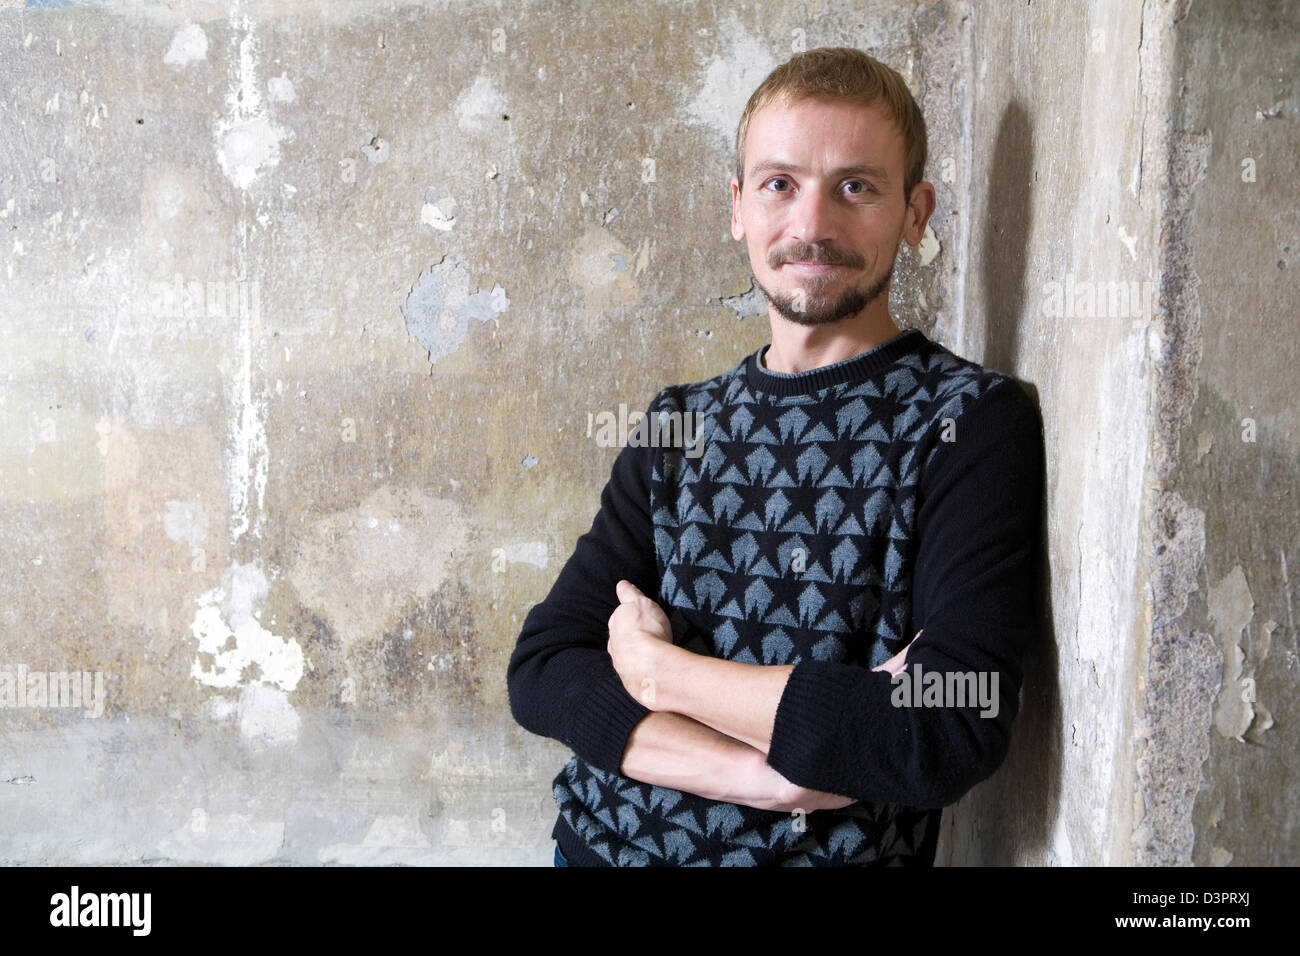 Berlin, Germany, Urs Küenzi Swiss gallerist and owner of the substitute, in Portrait - Stock Image